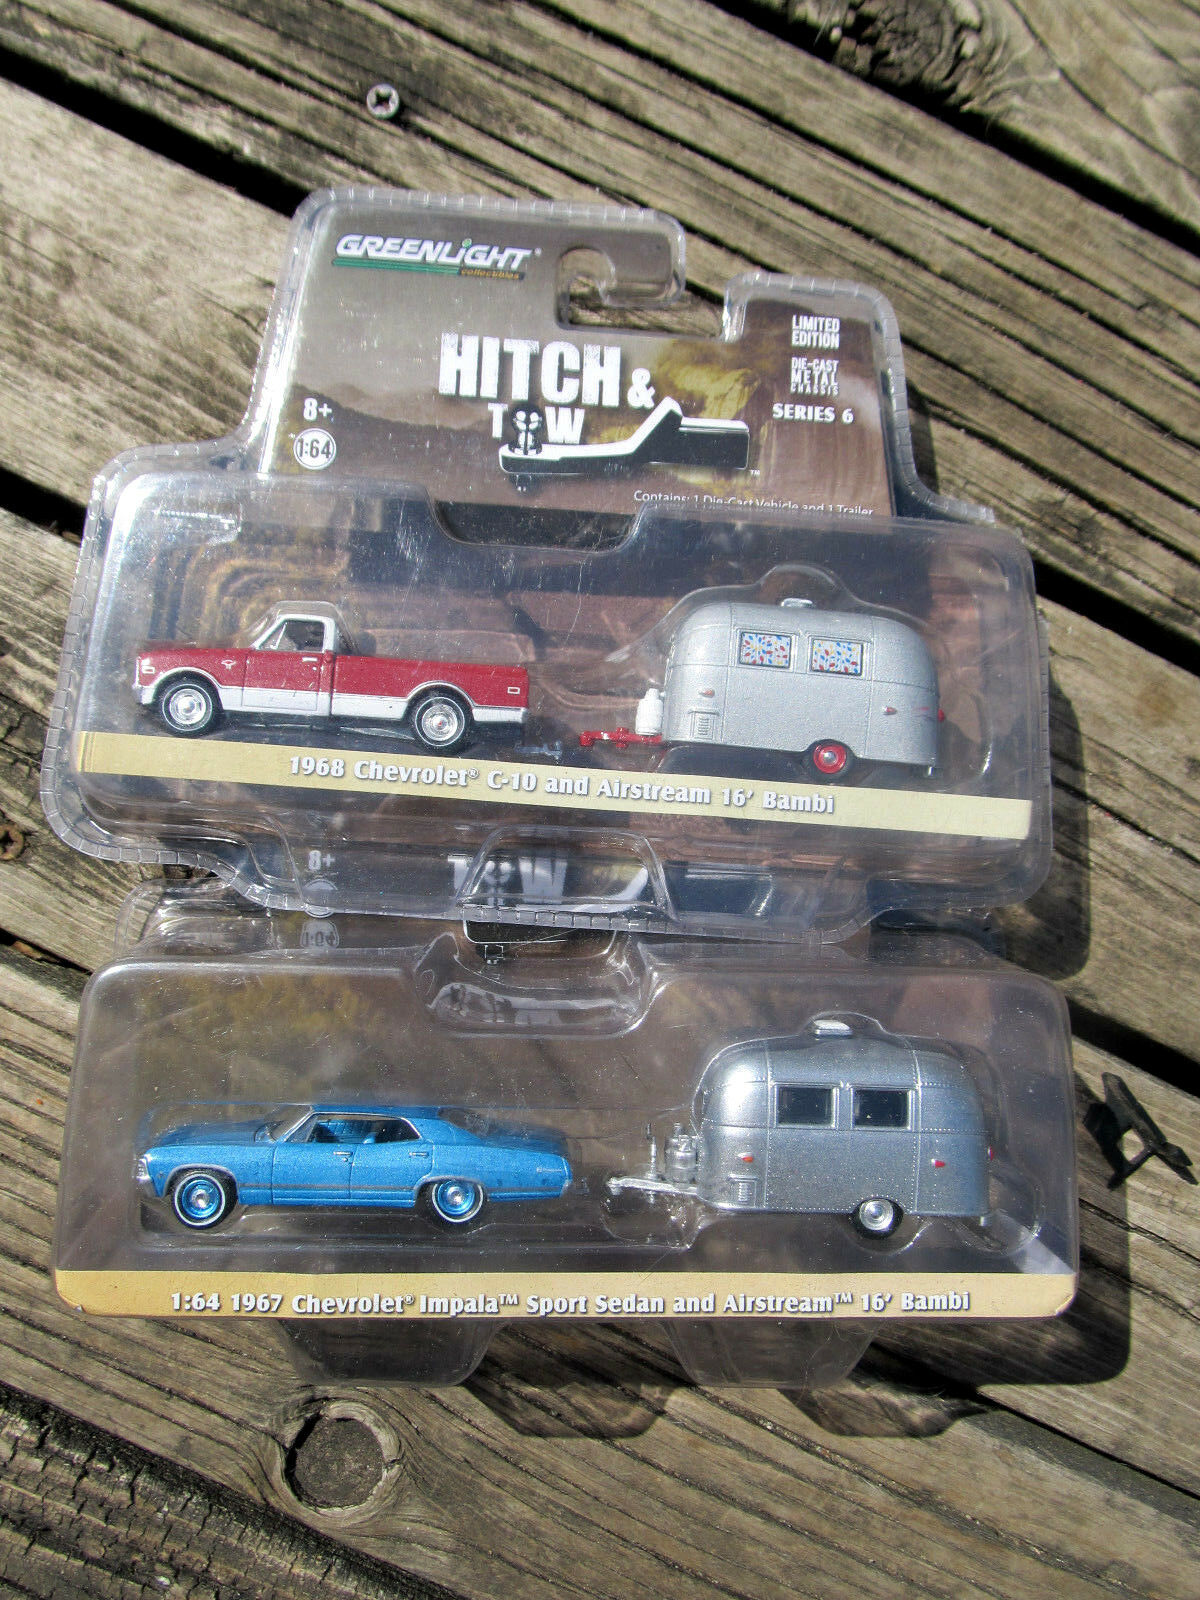 GREENLIGHT  HITCH & TOW LOT1967 iMPALE 1968 CHEVROLET CHEVROLET CHEVROLET C-10  AIRSTREAM 16' BAMBI b03184